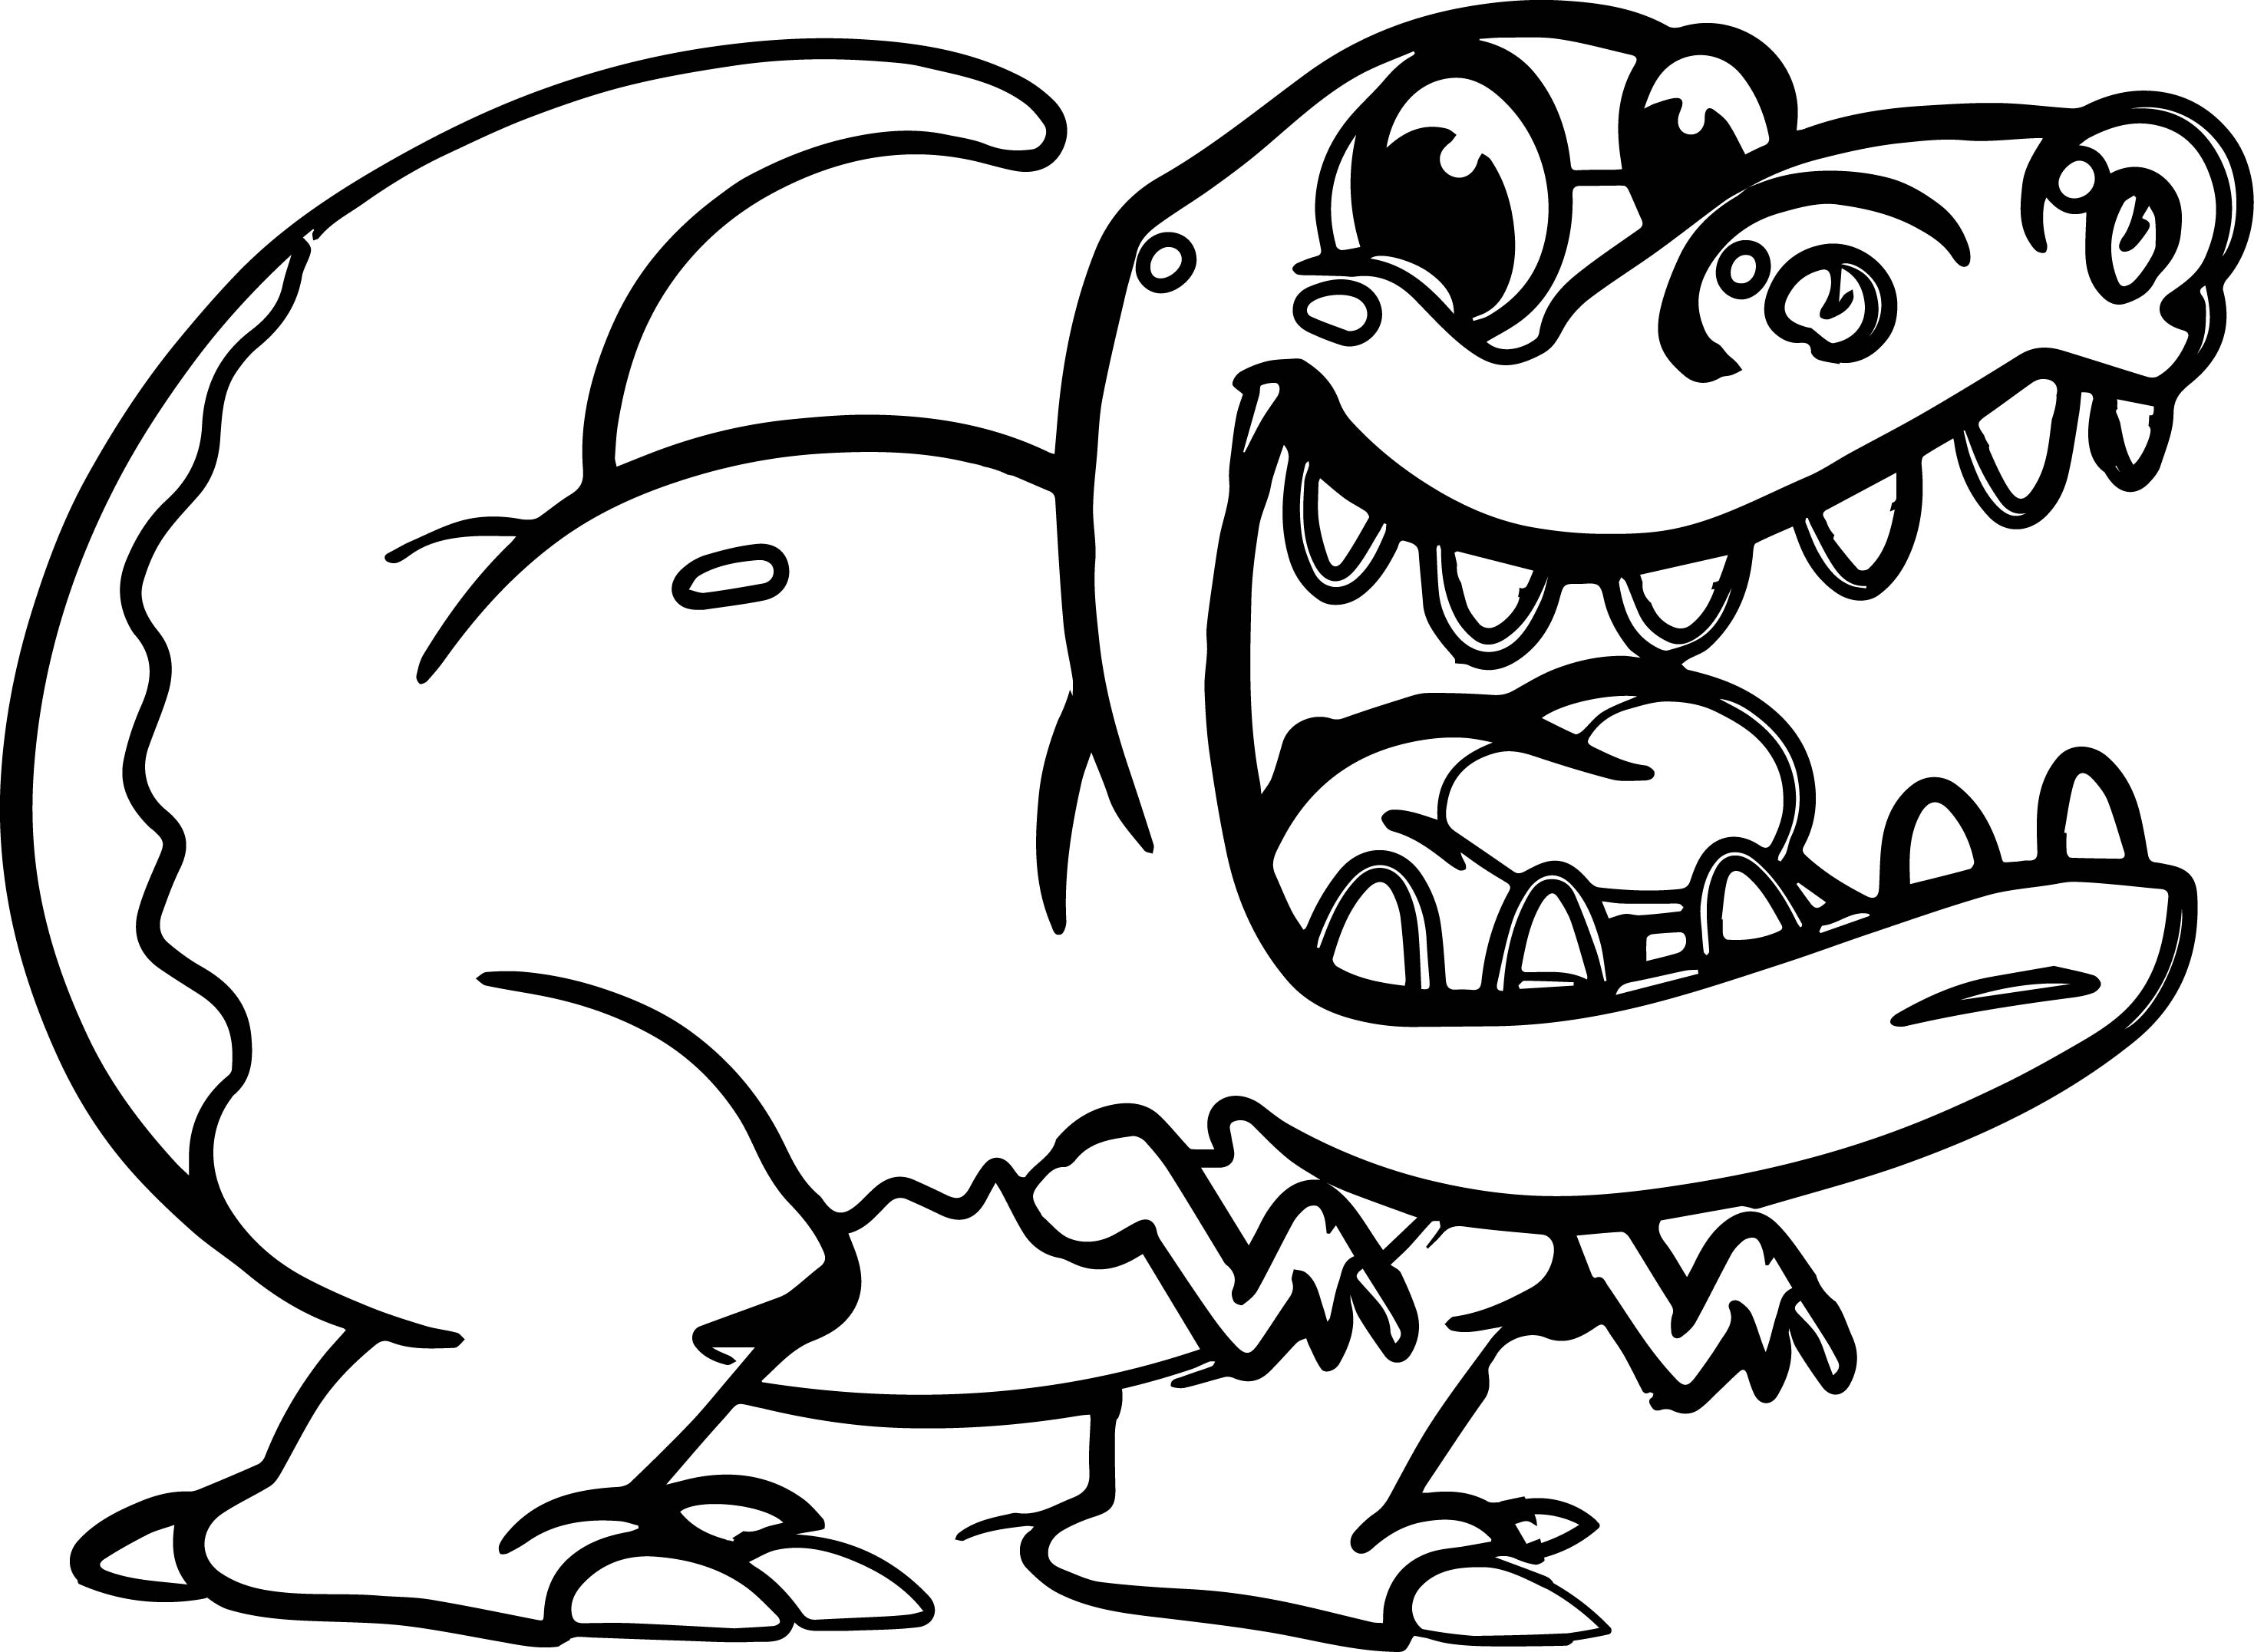 dinosaurs pictures to color fight dinosaurs coloring pages for kids printable free color to pictures dinosaurs